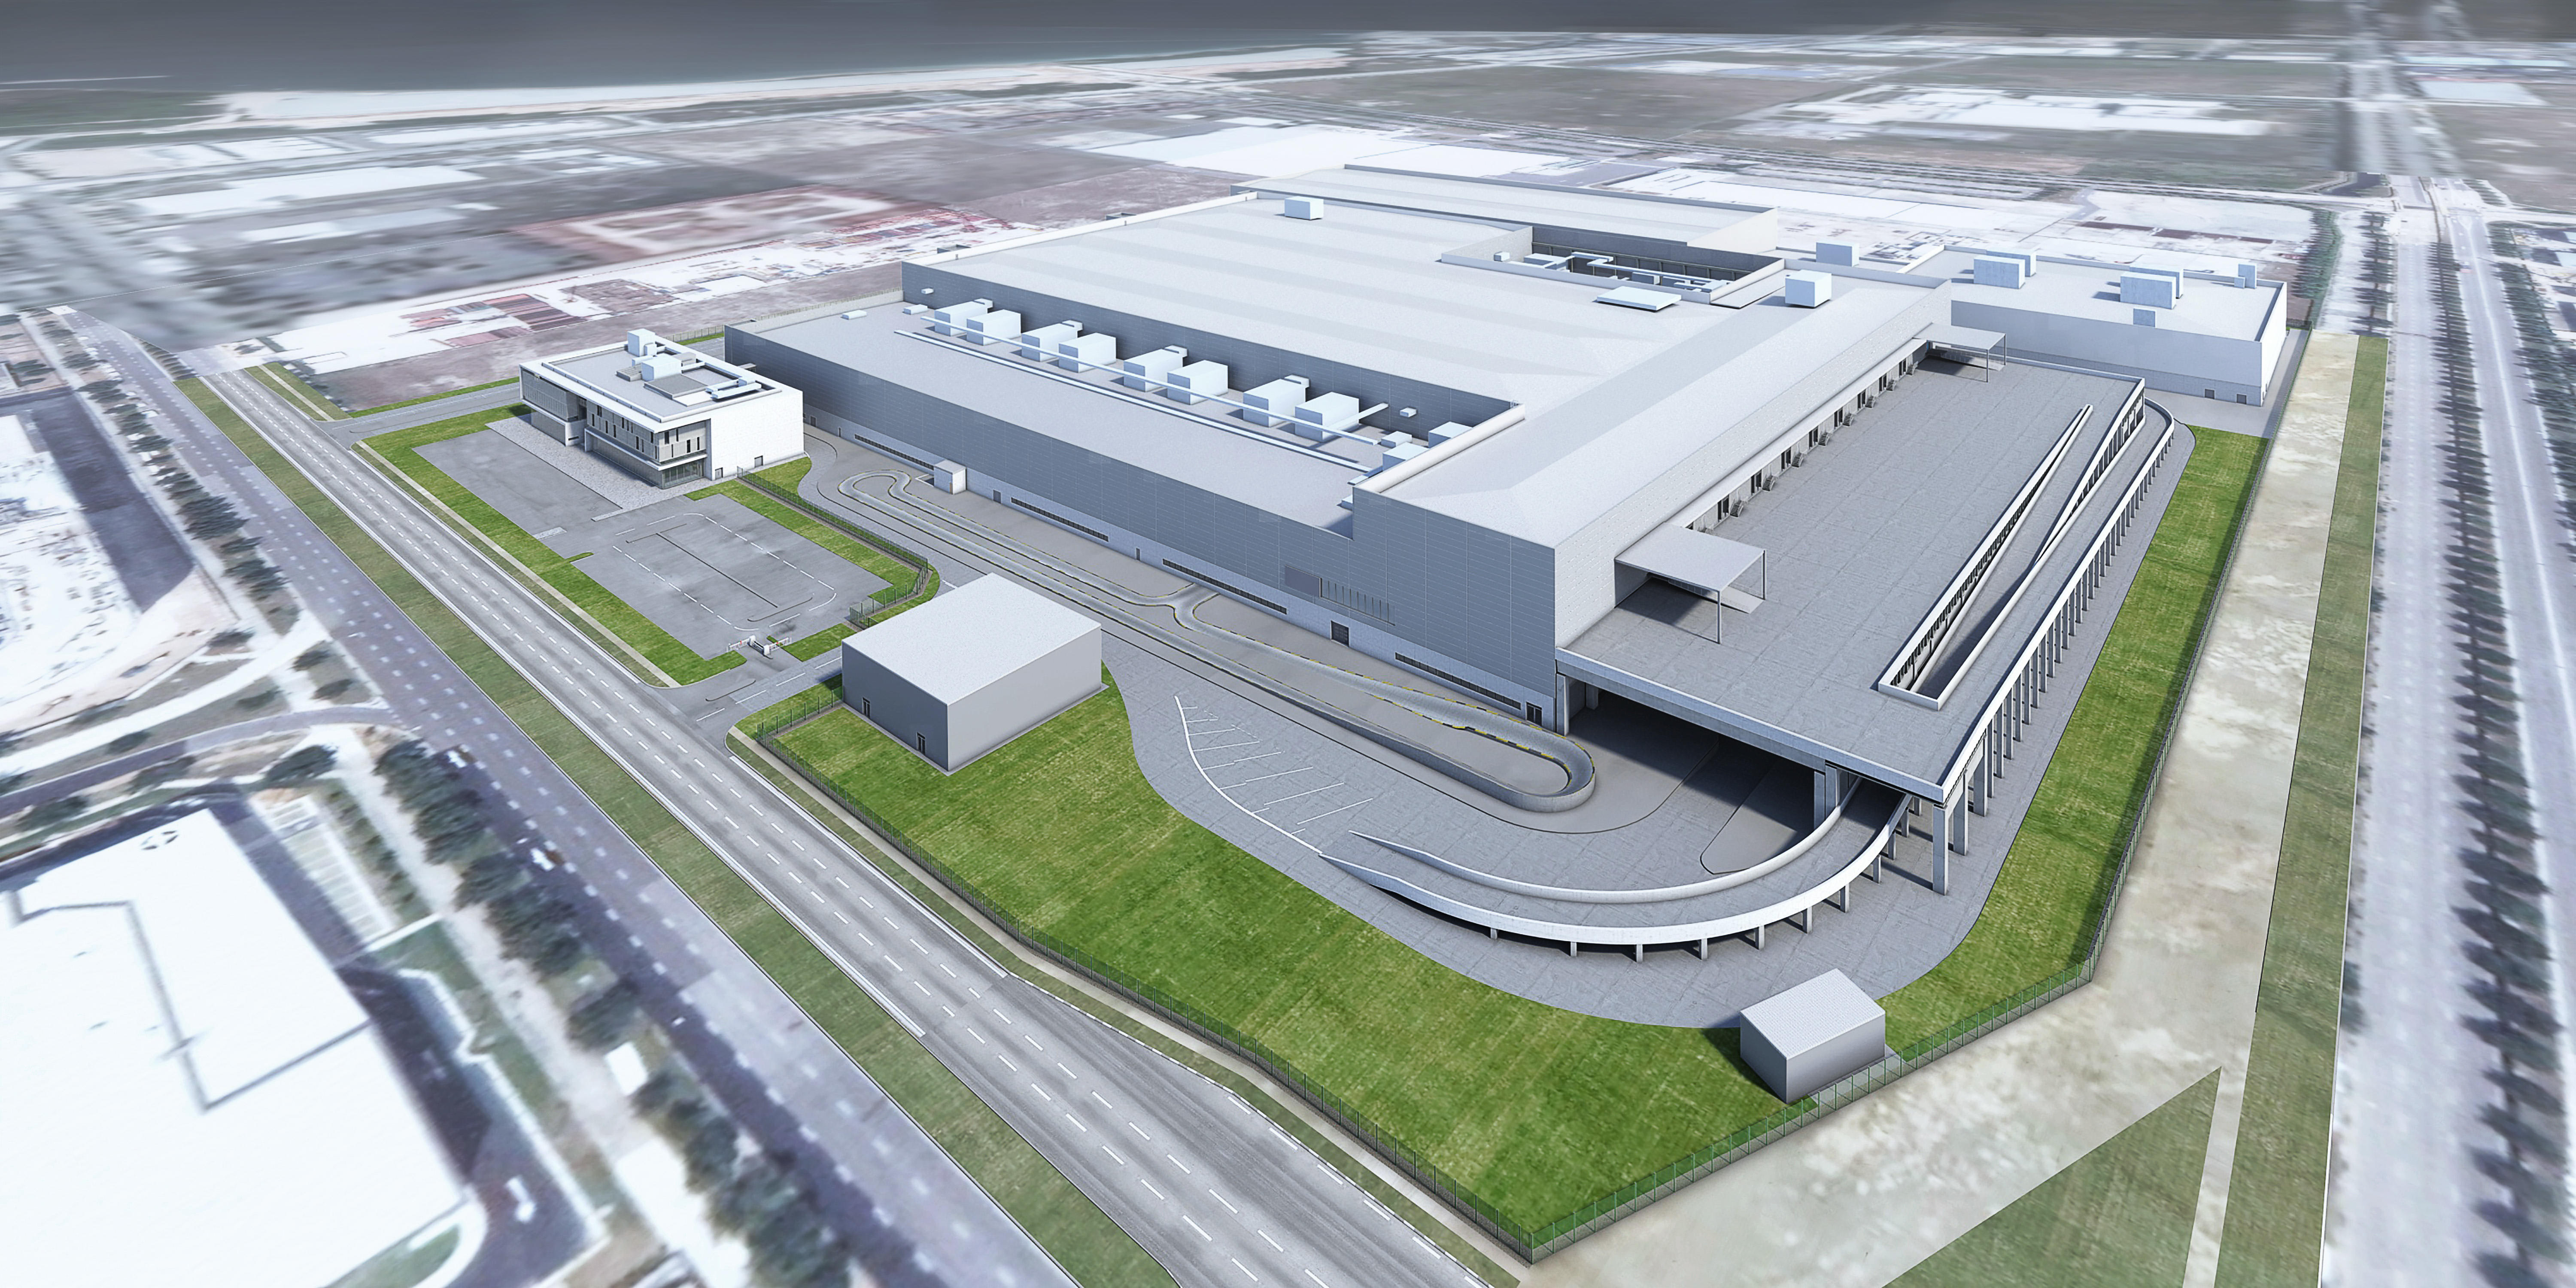 dyson-automotive-manufacturing-facility-render-1